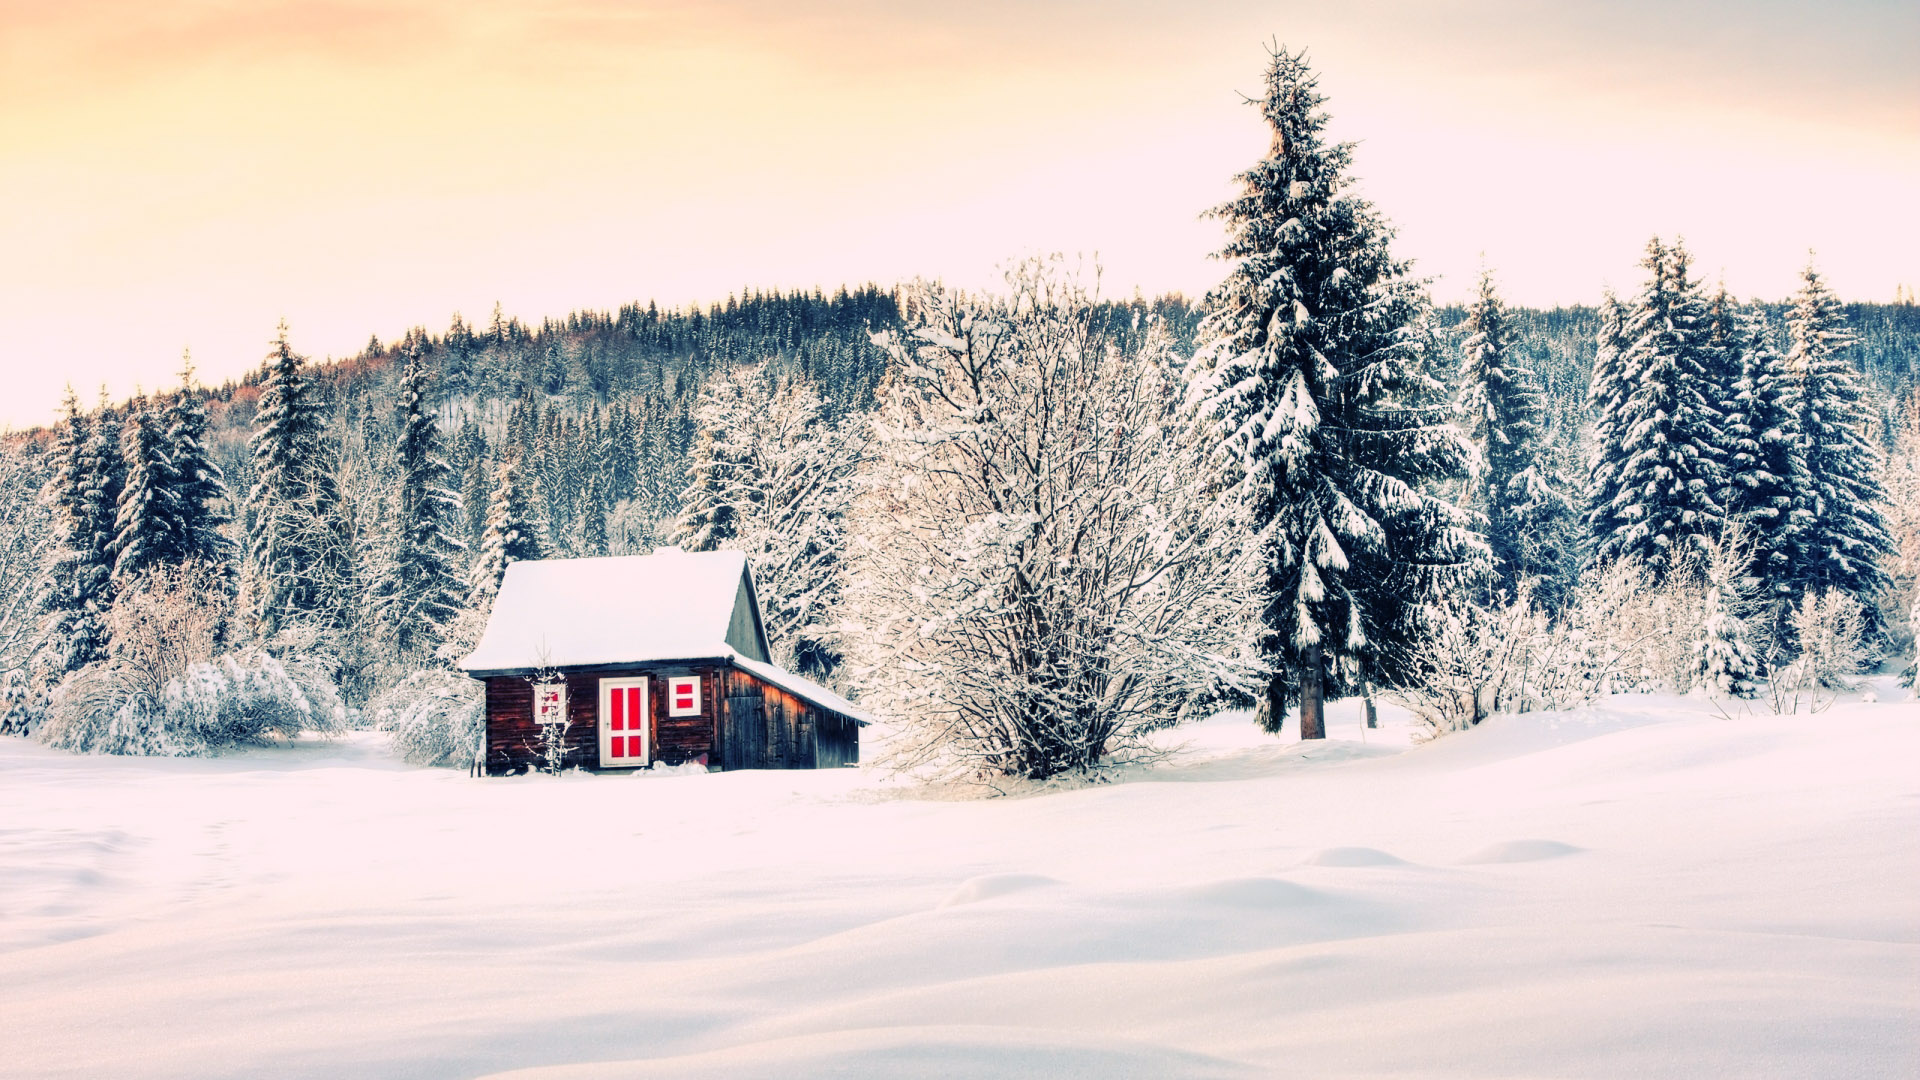 The Winter House Mac Apple Wallpaper Trip Mac Background 1920x1080